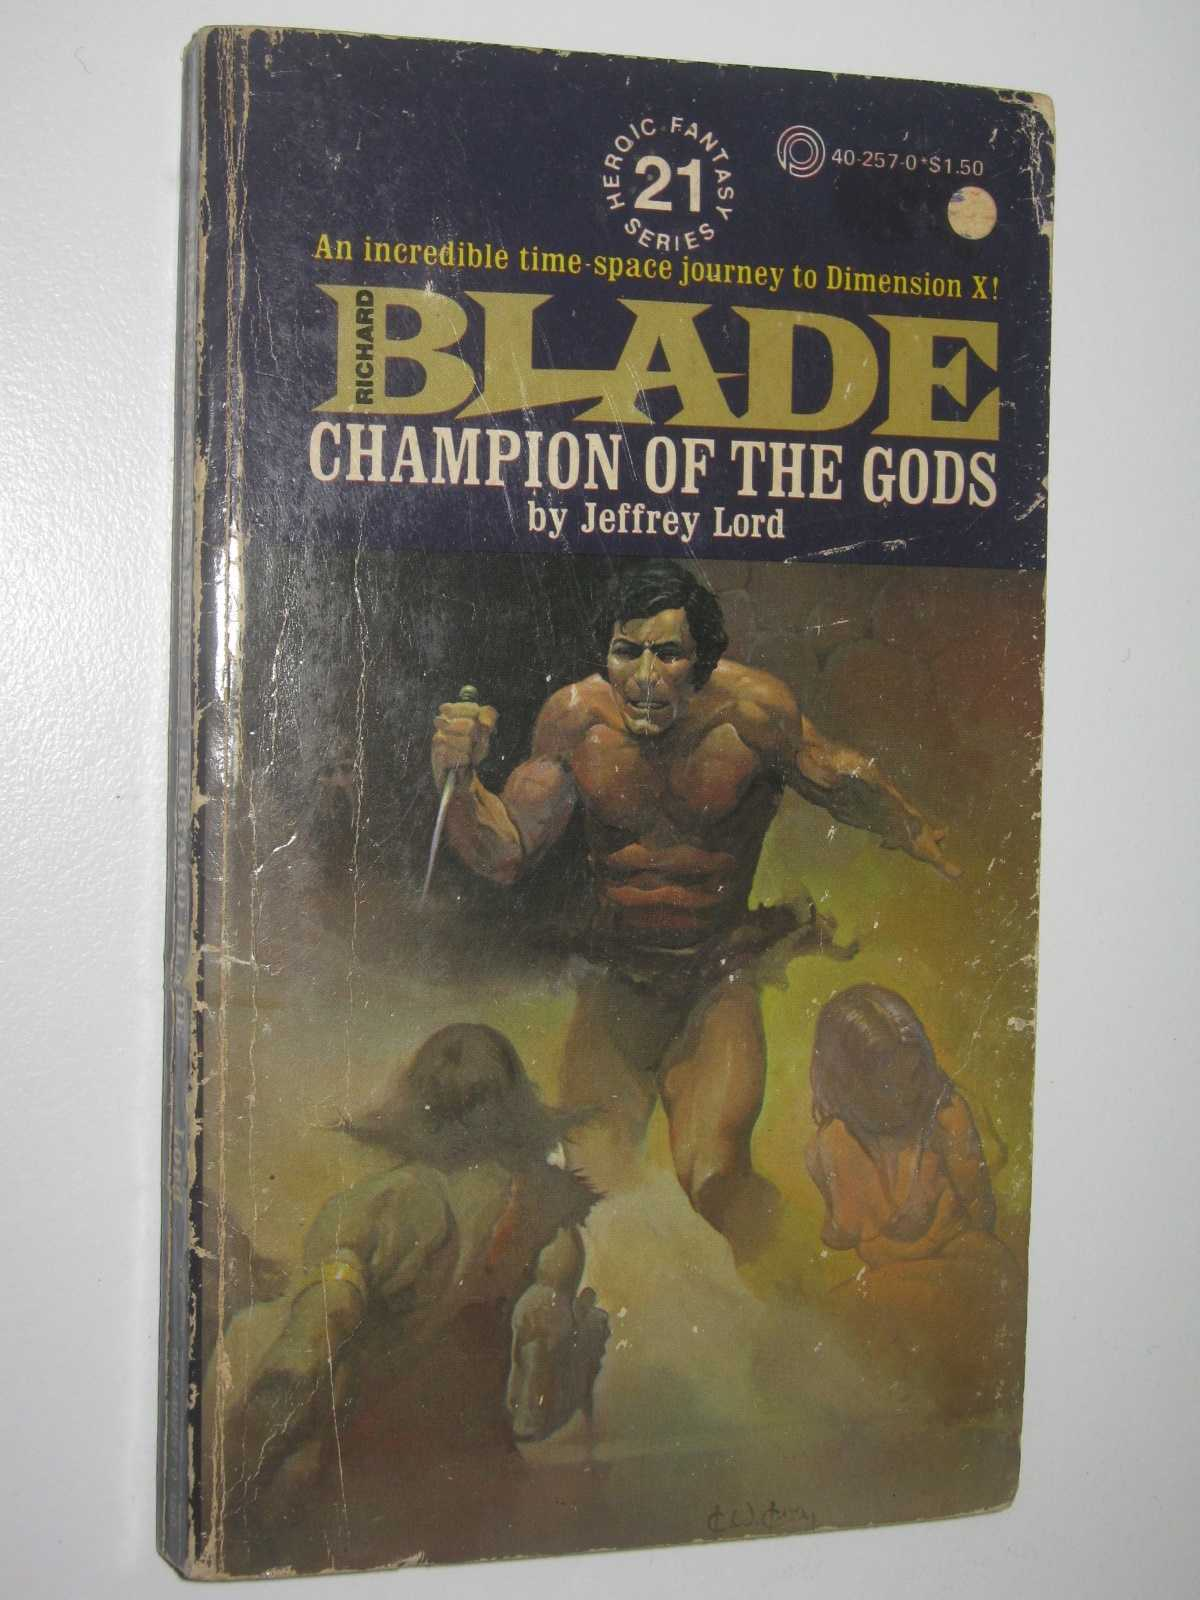 Champion of the Gods - Blade Series #21, Lord, Jeffrey